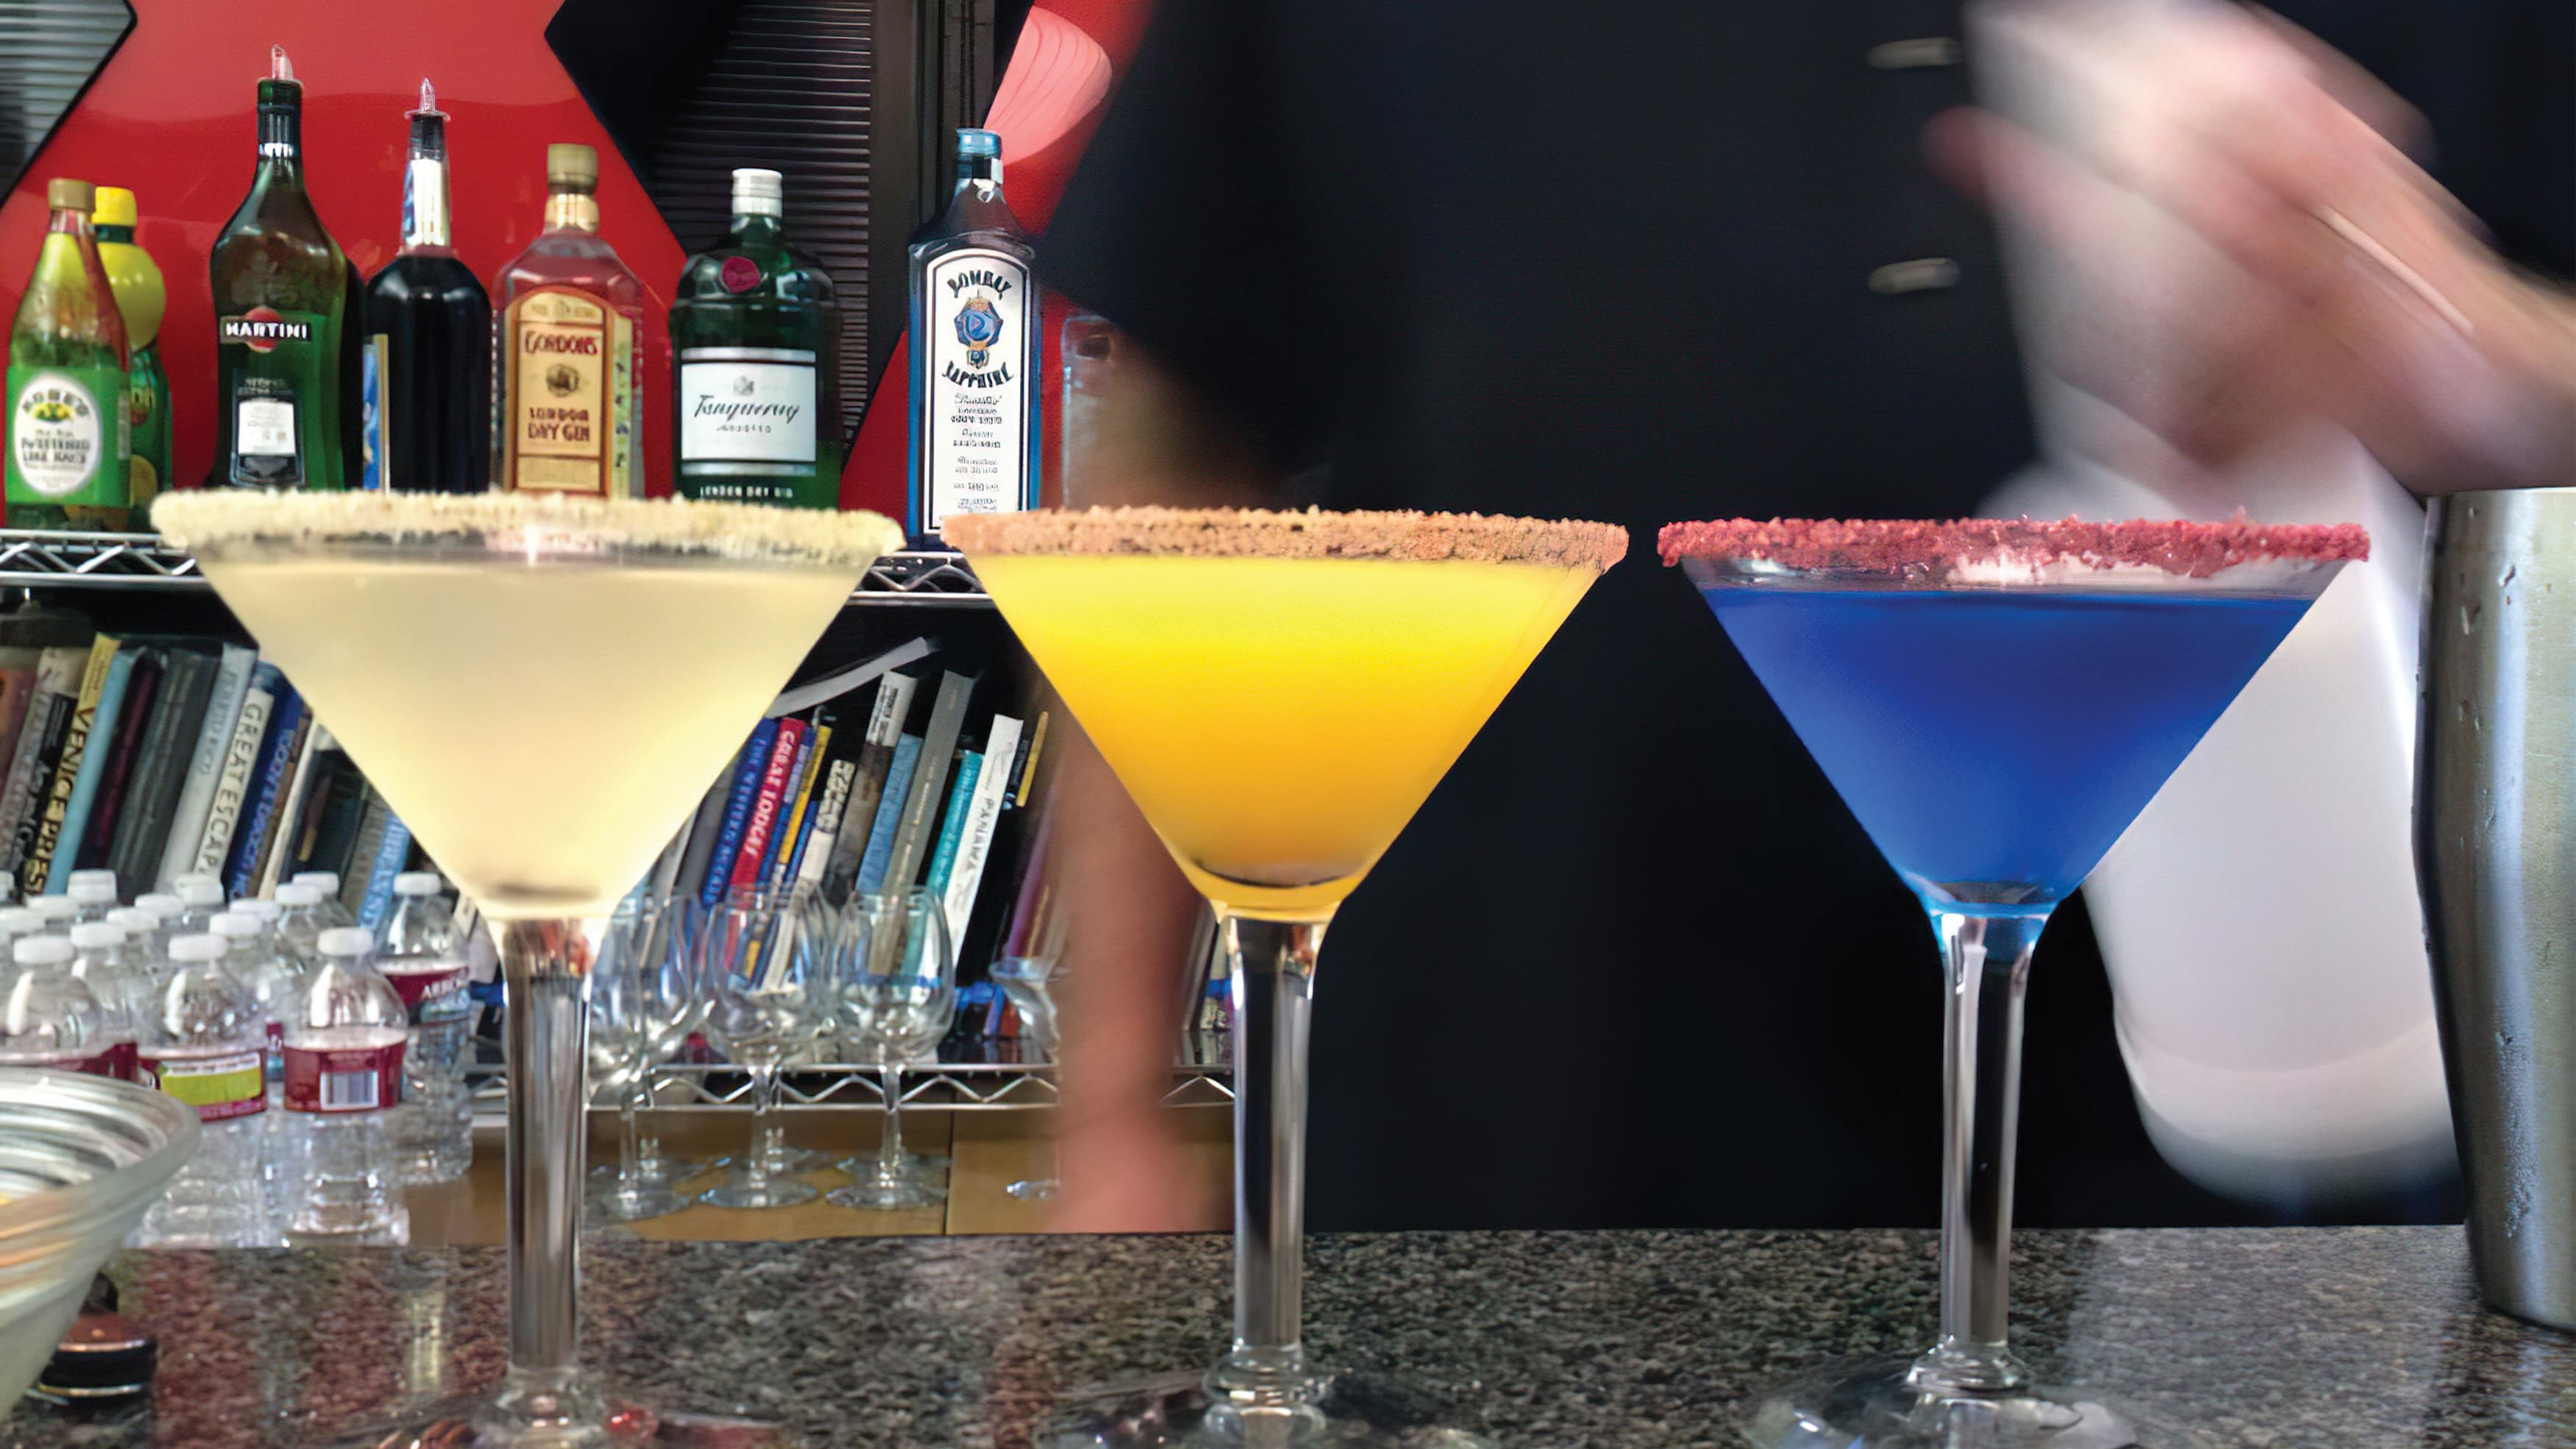 Three martini glasses with differenly colored drinks, poured in celebration of RSM's 15th year in business.